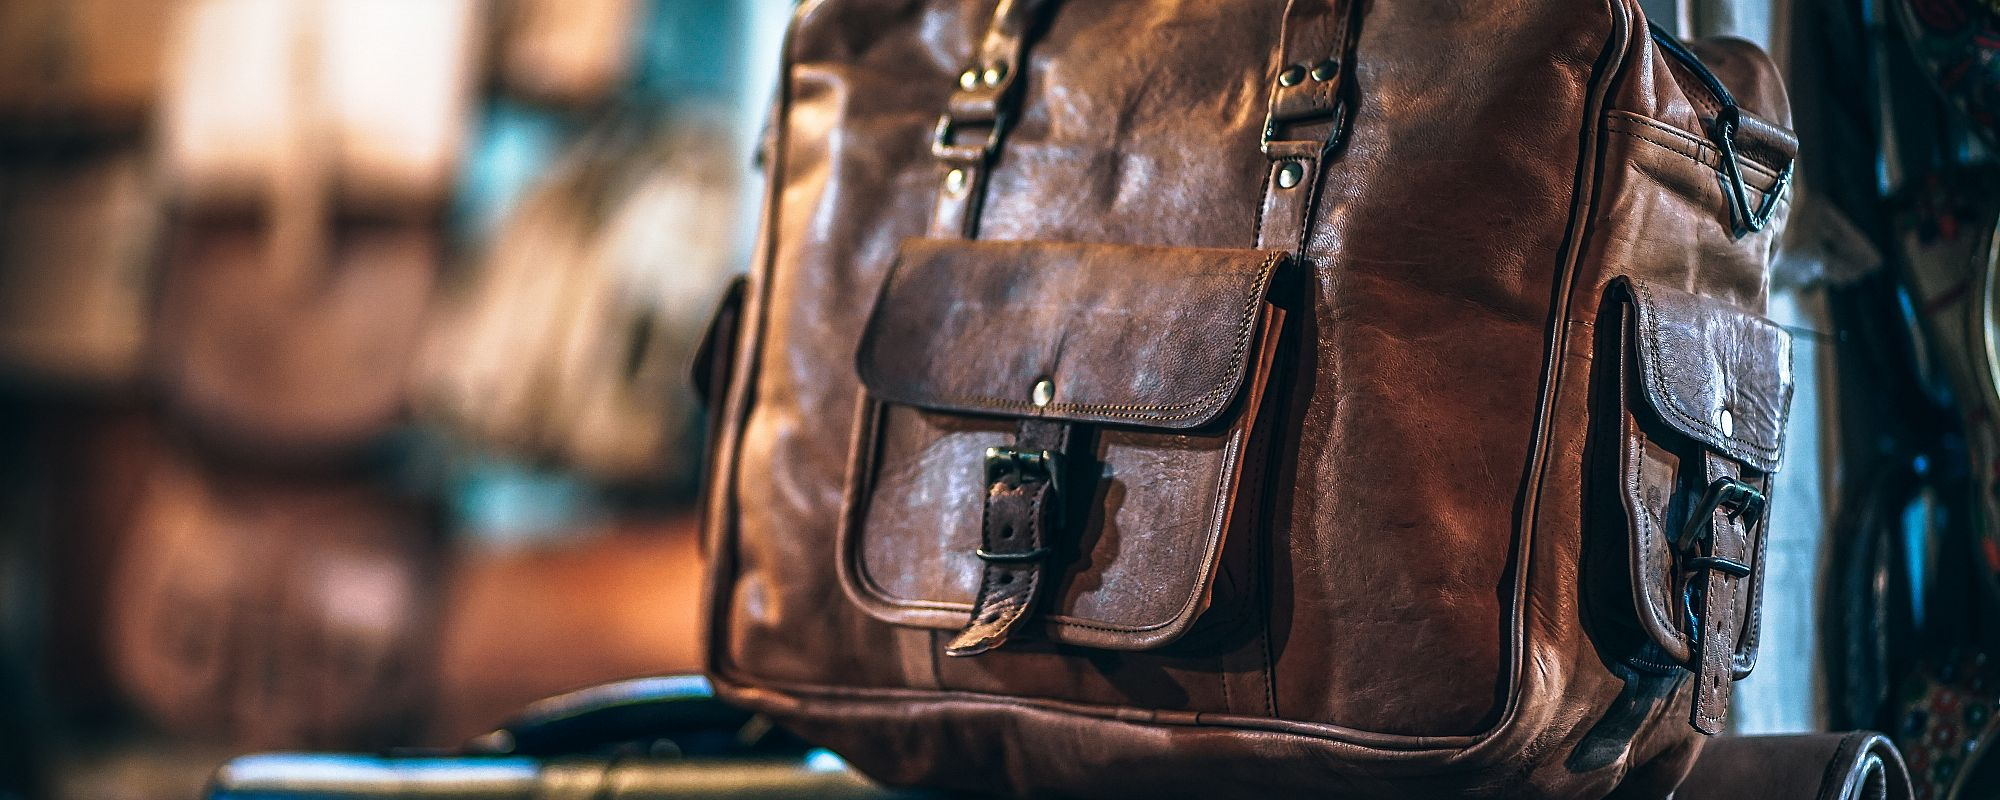 LEATHER CLEANING TECHNOLOGY ALLOWS COMPANIES TO RESTORE, NOT REPLACE